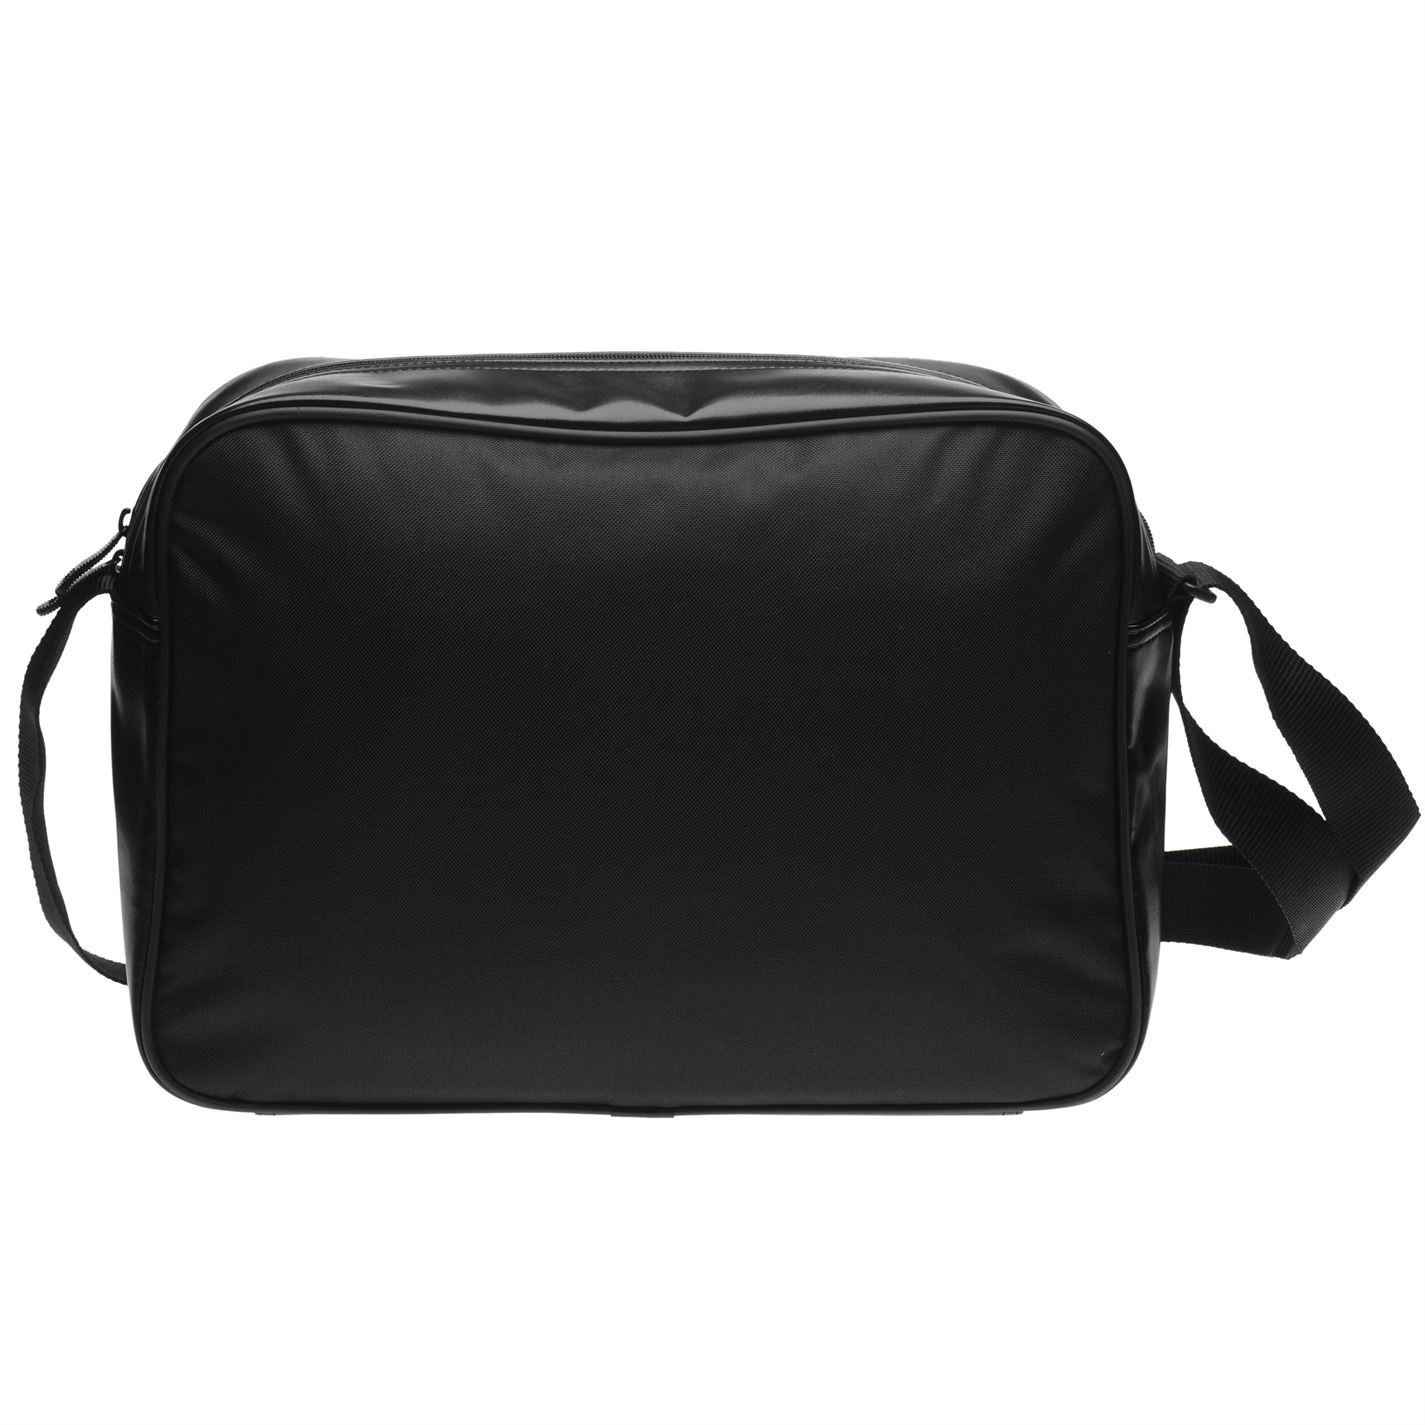 55d9a4aa10 Puma Flower Campus Reporter Bag Black Messenger Flight Bag Holdall W 46 x  H 30 x D 10 (cm)  Amazon.co.uk  Luggage